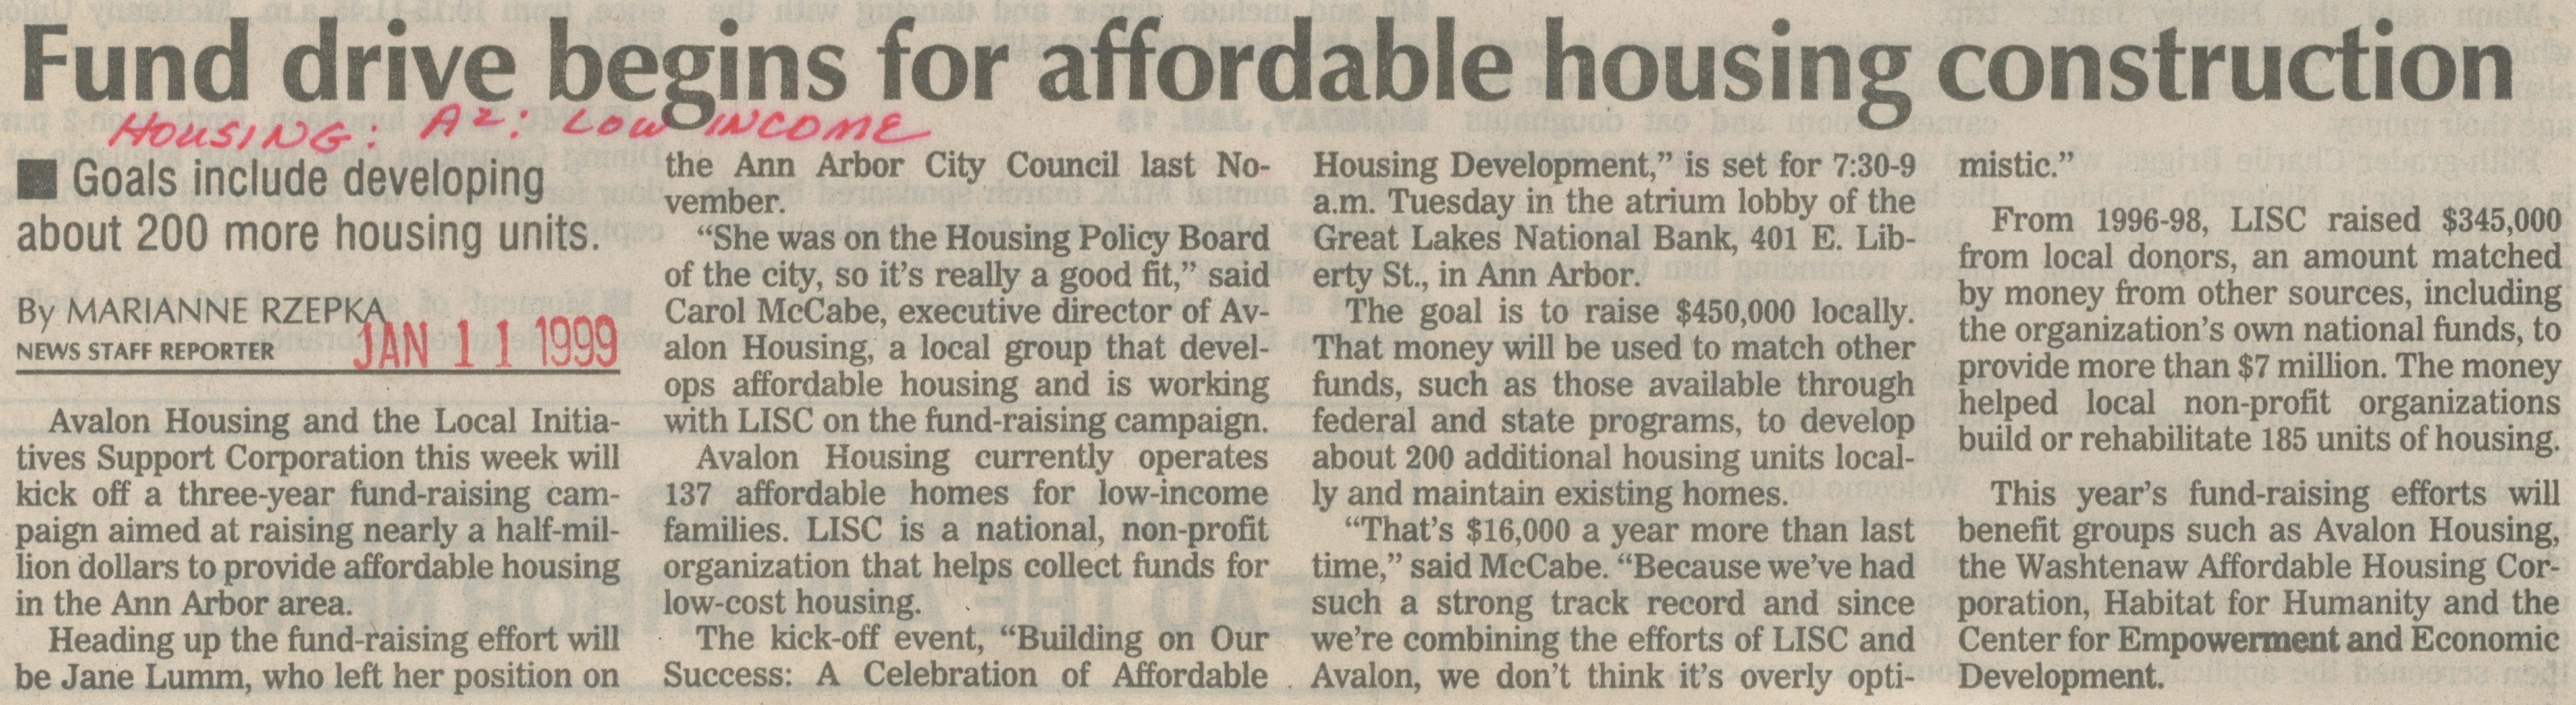 Fund Drive Begins for Affordable Housing Construction image